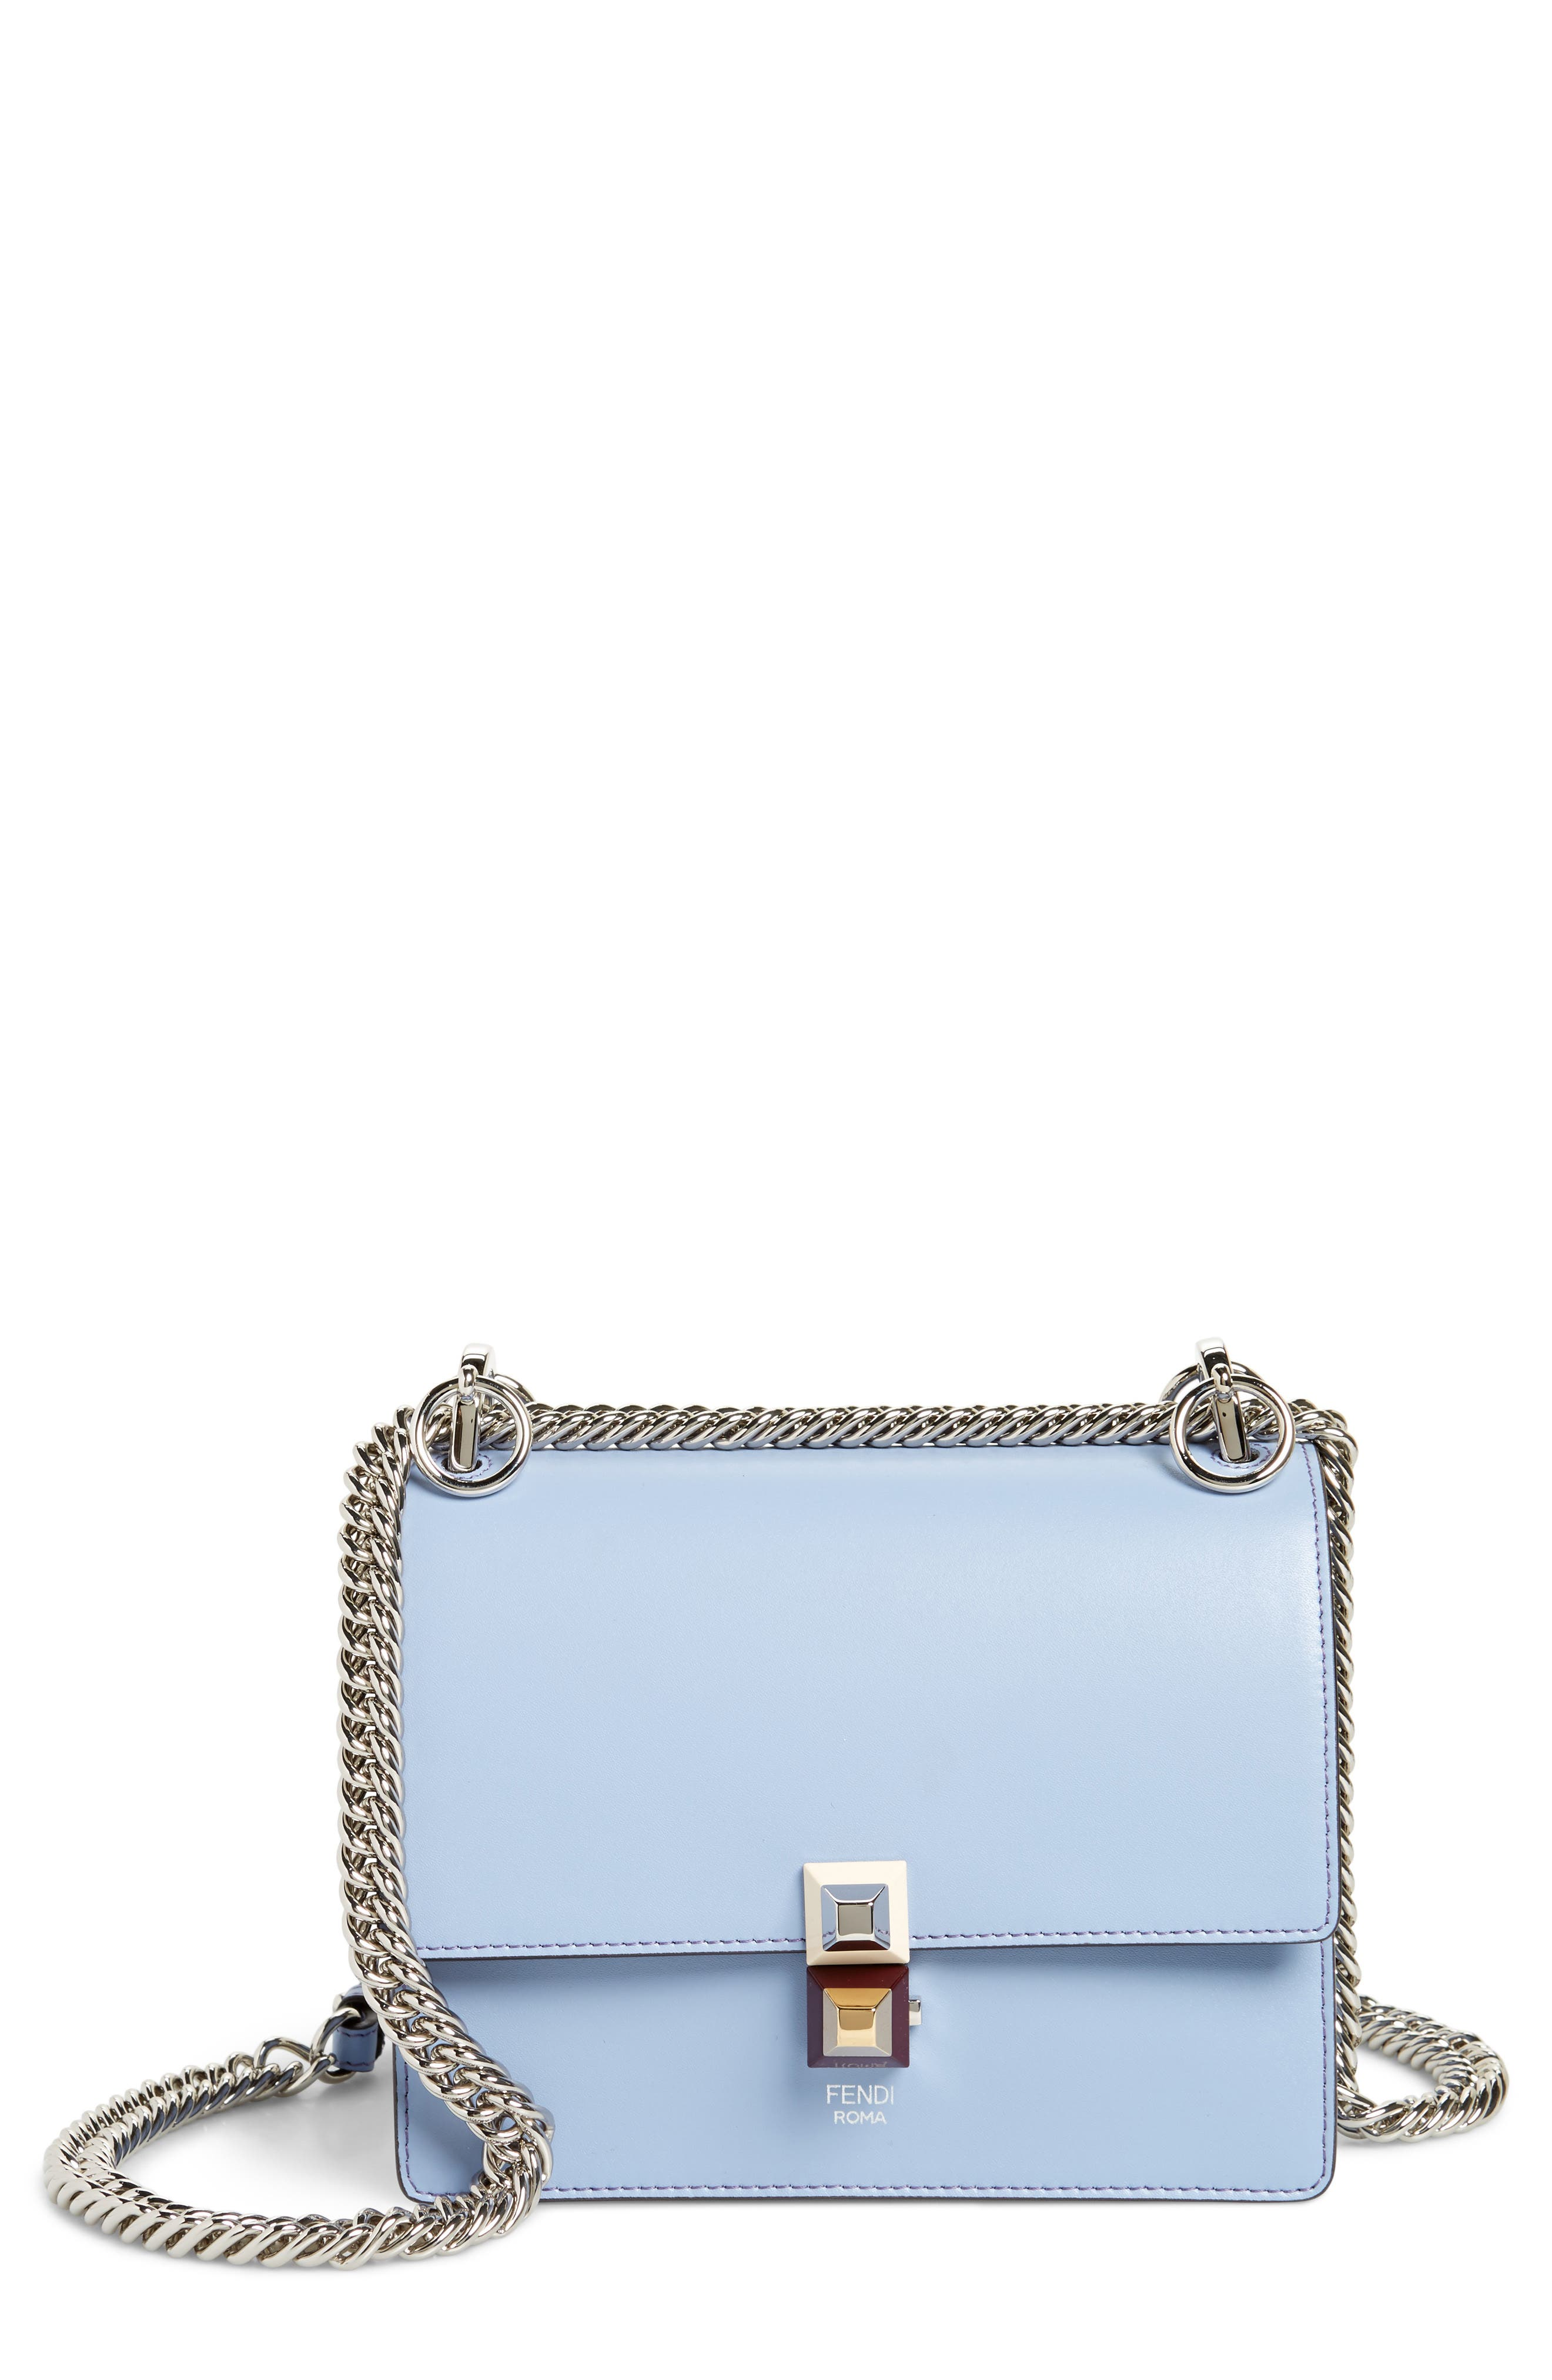 Fendi Mini Kan I Leather Shoulder Bag